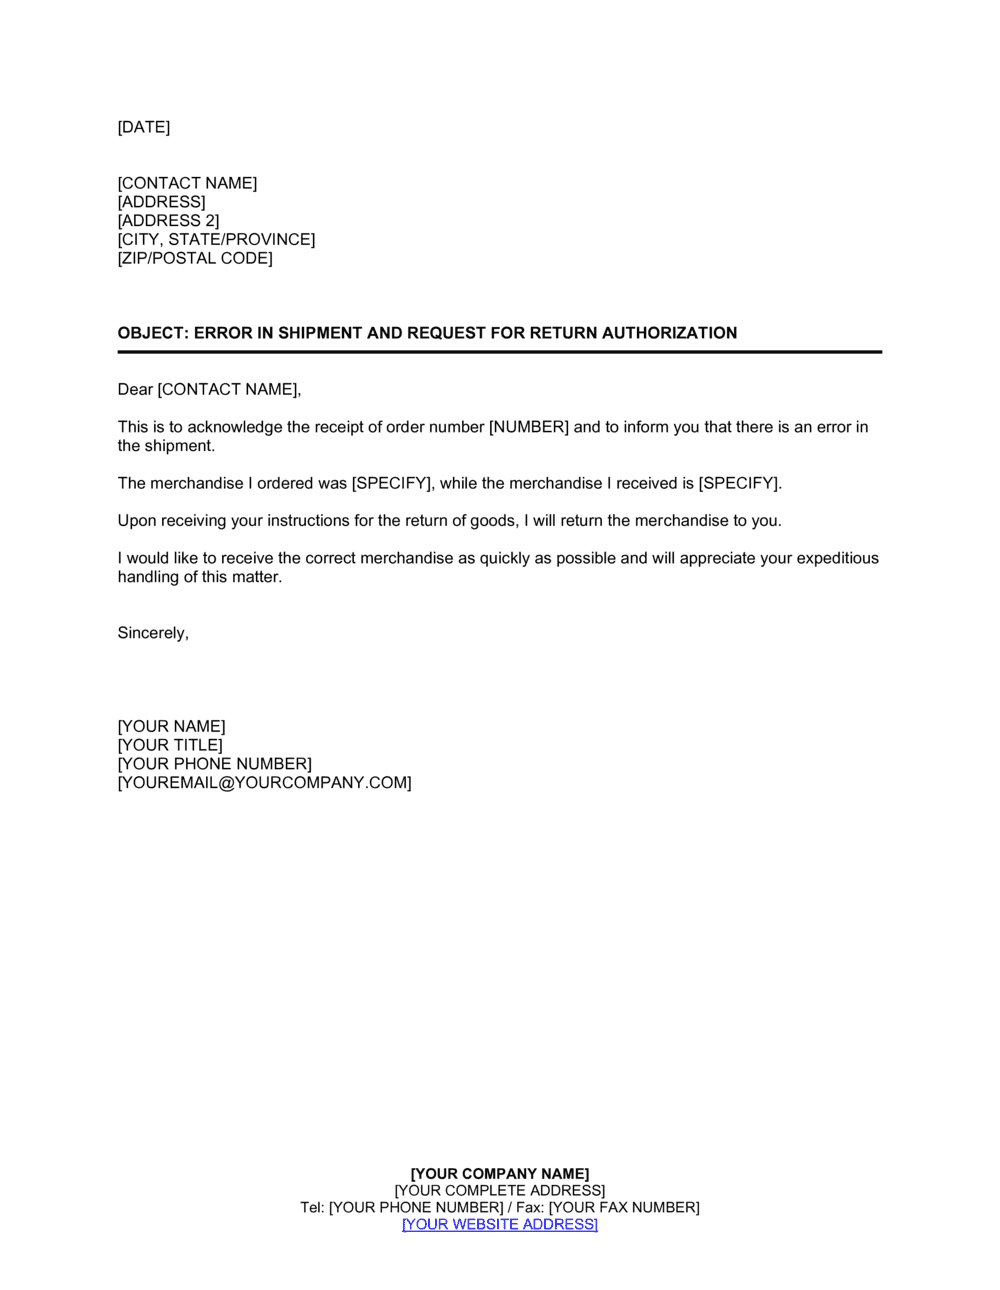 Business-in-a-Box's Notice of Error in Shipment and Request for Return Authorization Template